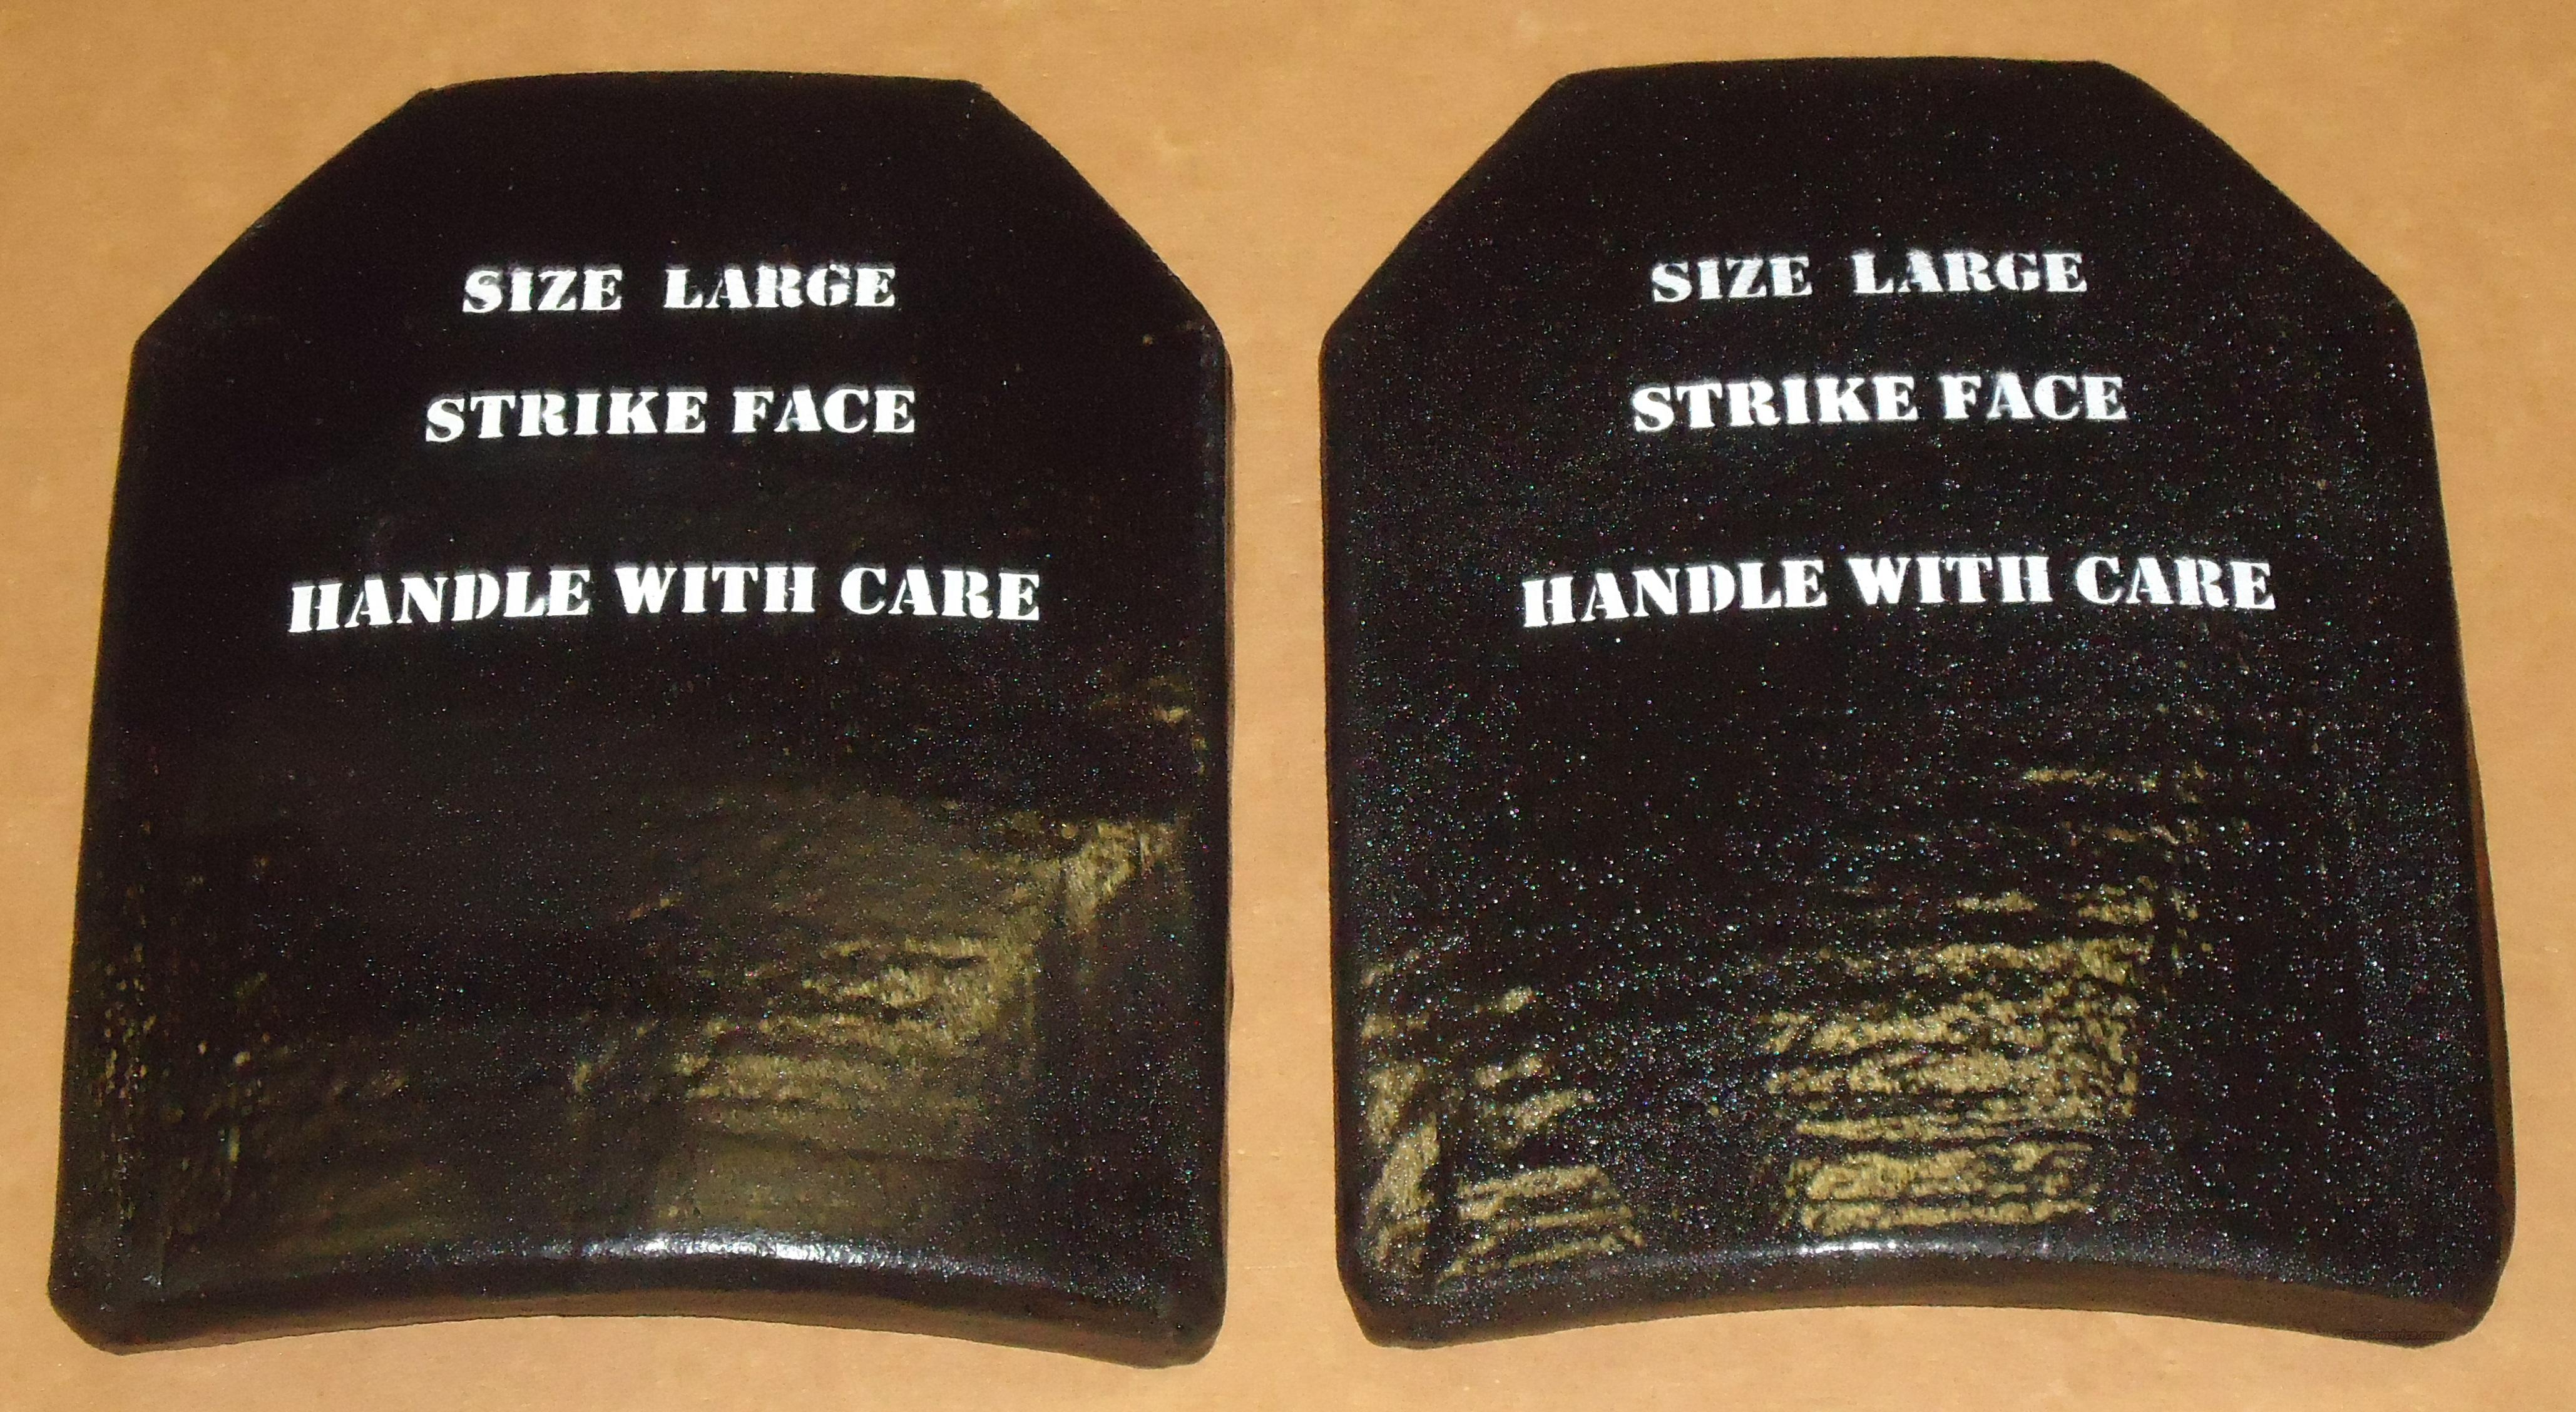 Armor SAPI Plates Level III LARGE M-80 Ball (2)  Non-Guns > Tactical Equipment/Vests